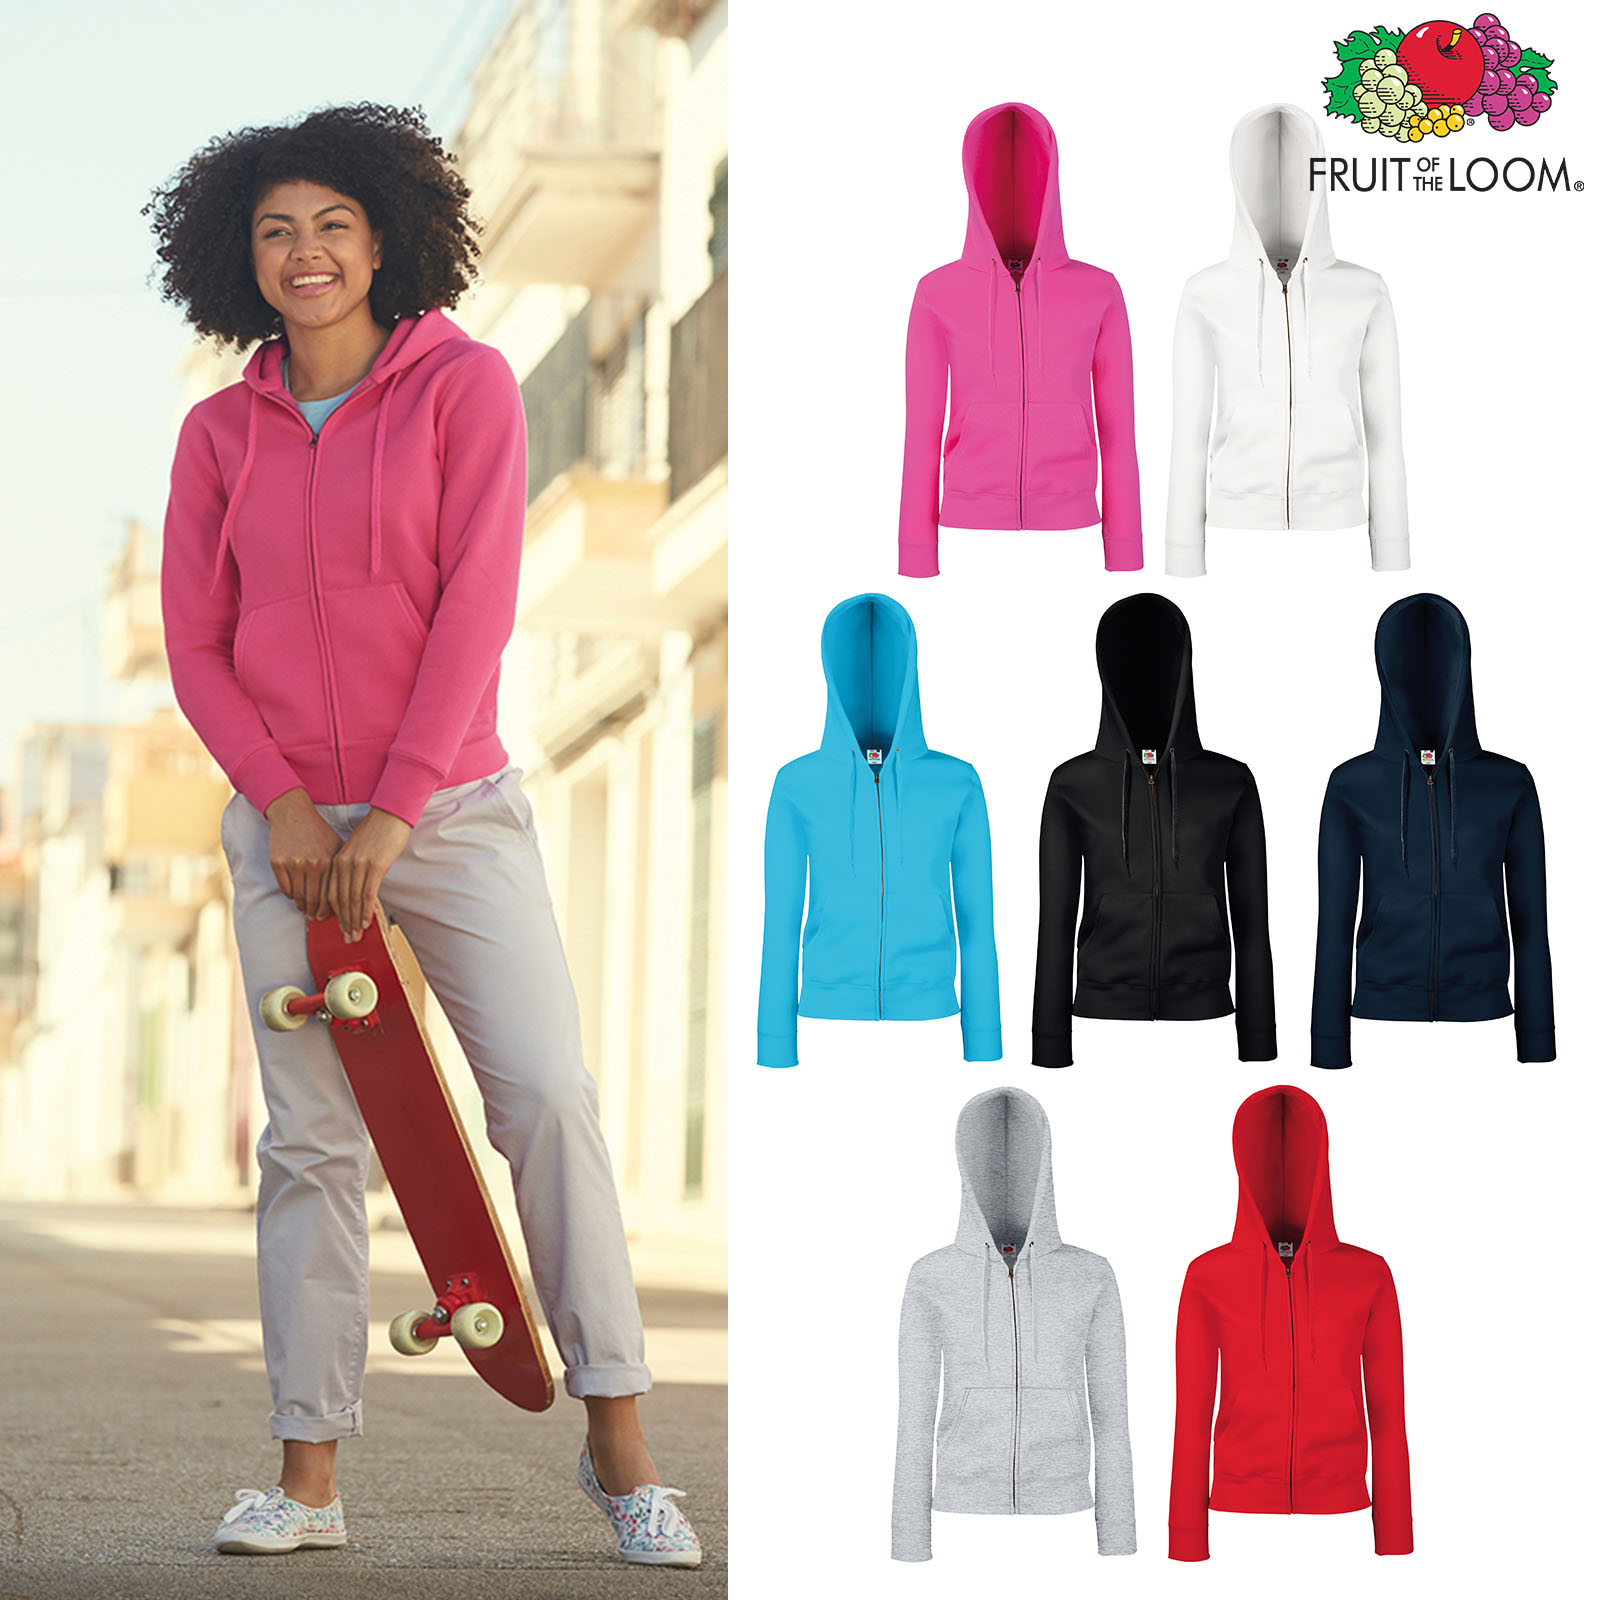 Lady-Fit Premium Sweat JacketFruit of the Loom